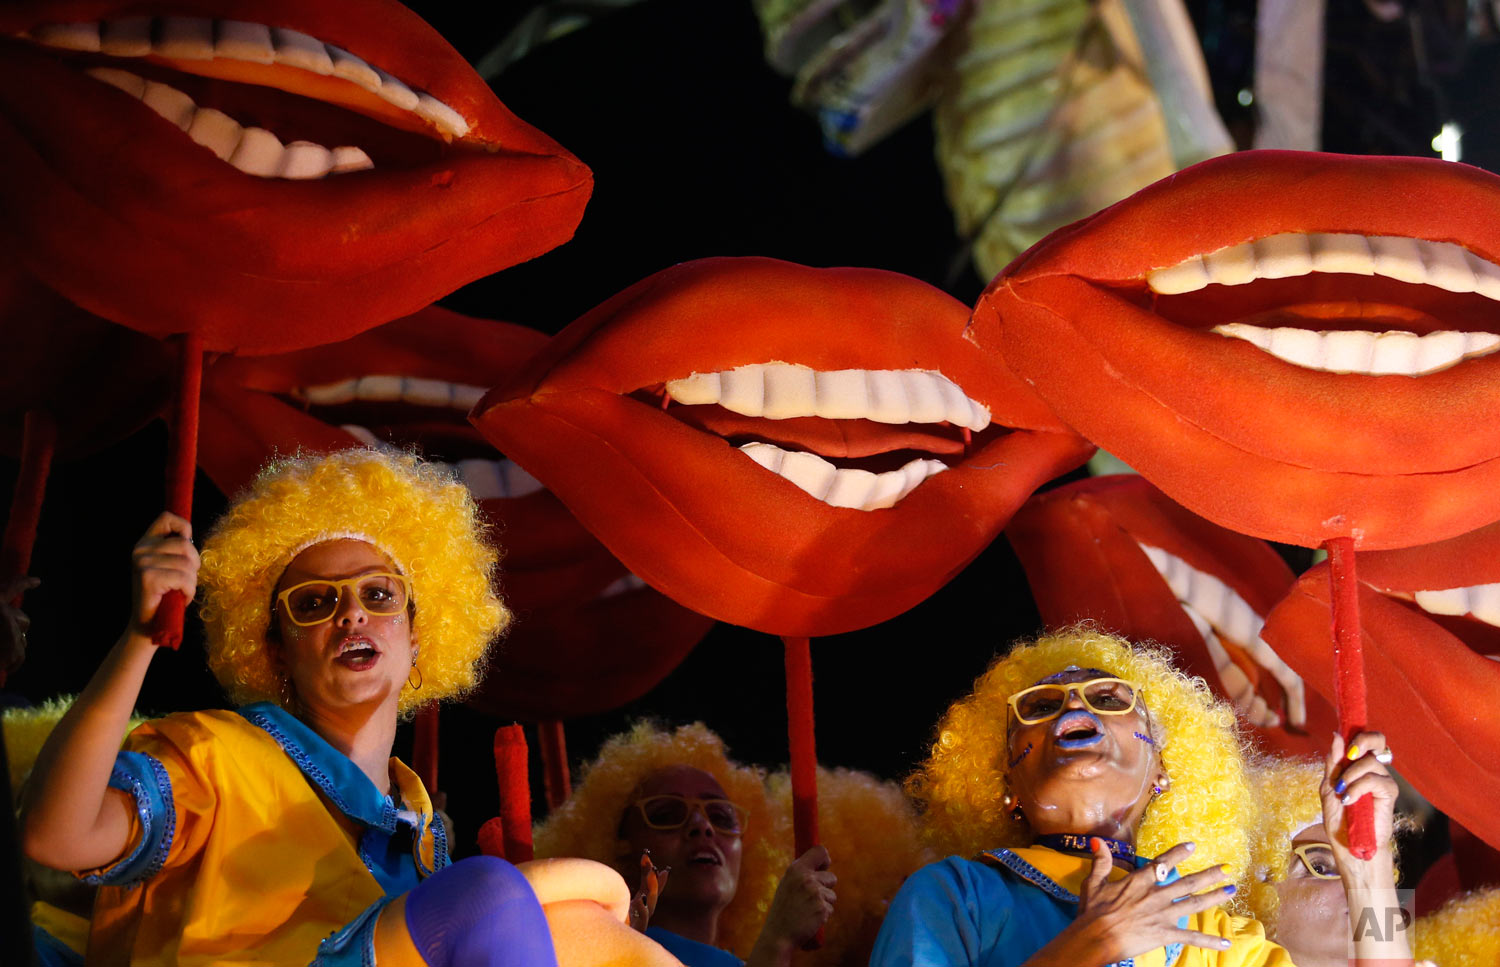 Performers from the Unidos da Tijuca samba school parade during Carnival celebrations at the Sambadrome in Rio de Janeiro, Brazil, Monday, Feb. 12, 2018. (AP Photo/Silvia Izquierdo)